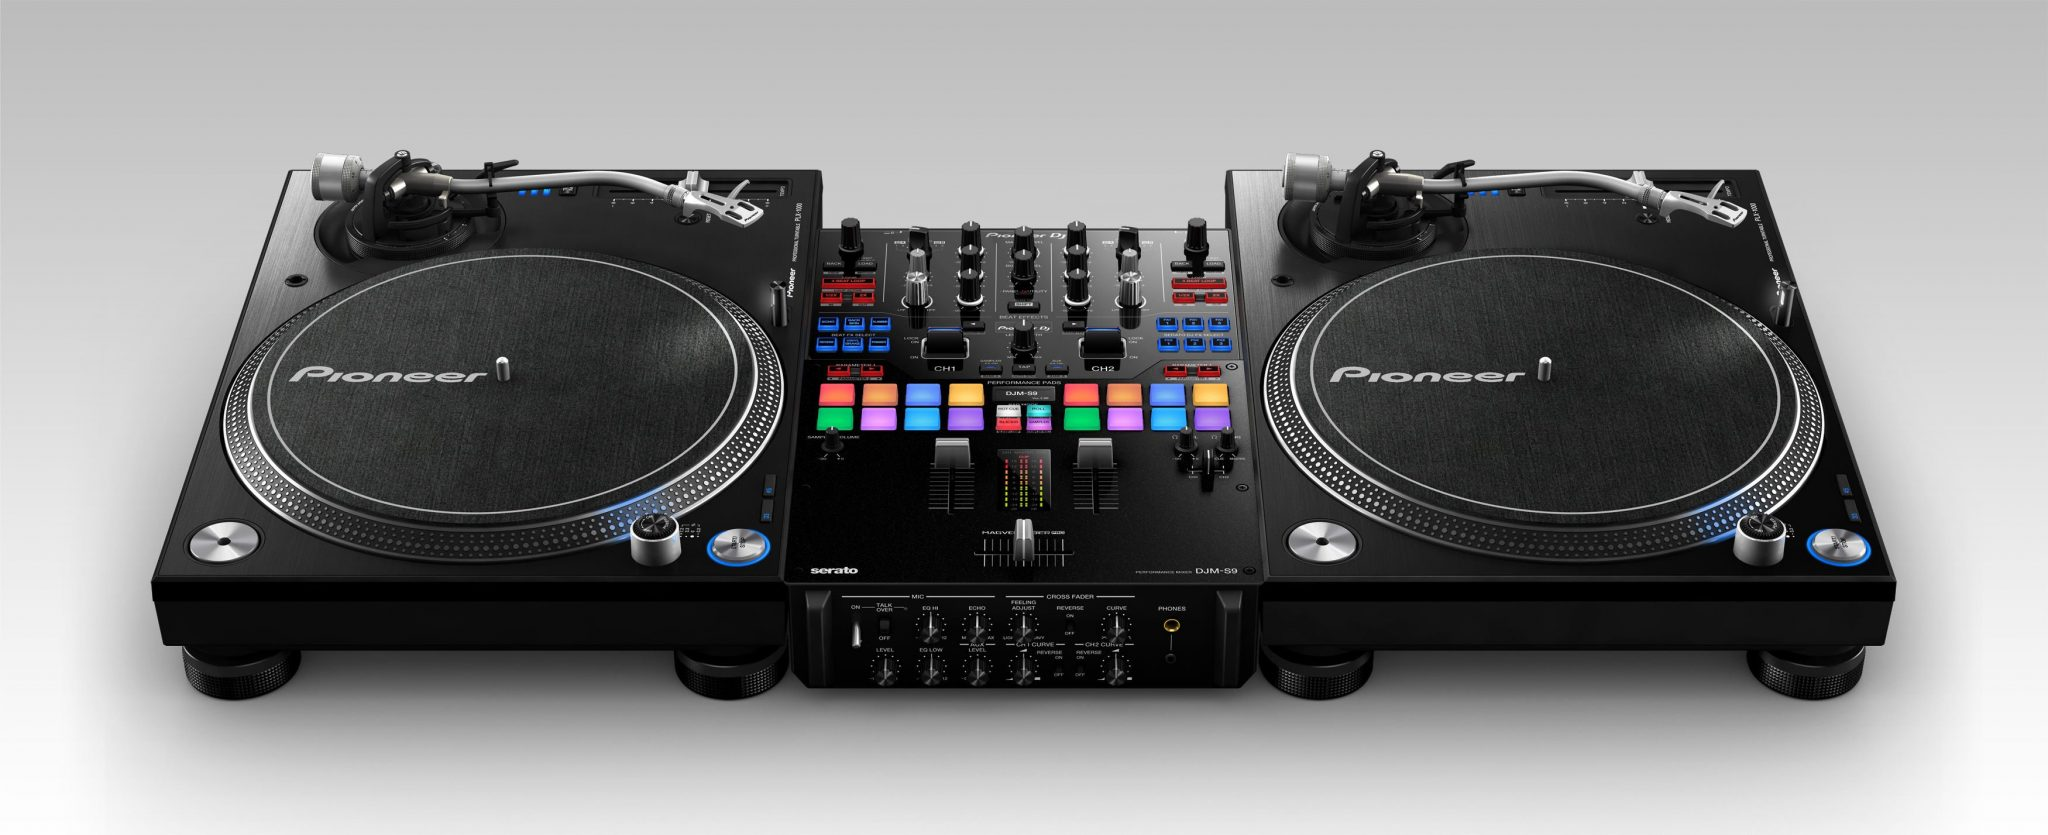 pioneer dj djm s9 serato dj scratch mixer 4 djworx. Black Bedroom Furniture Sets. Home Design Ideas